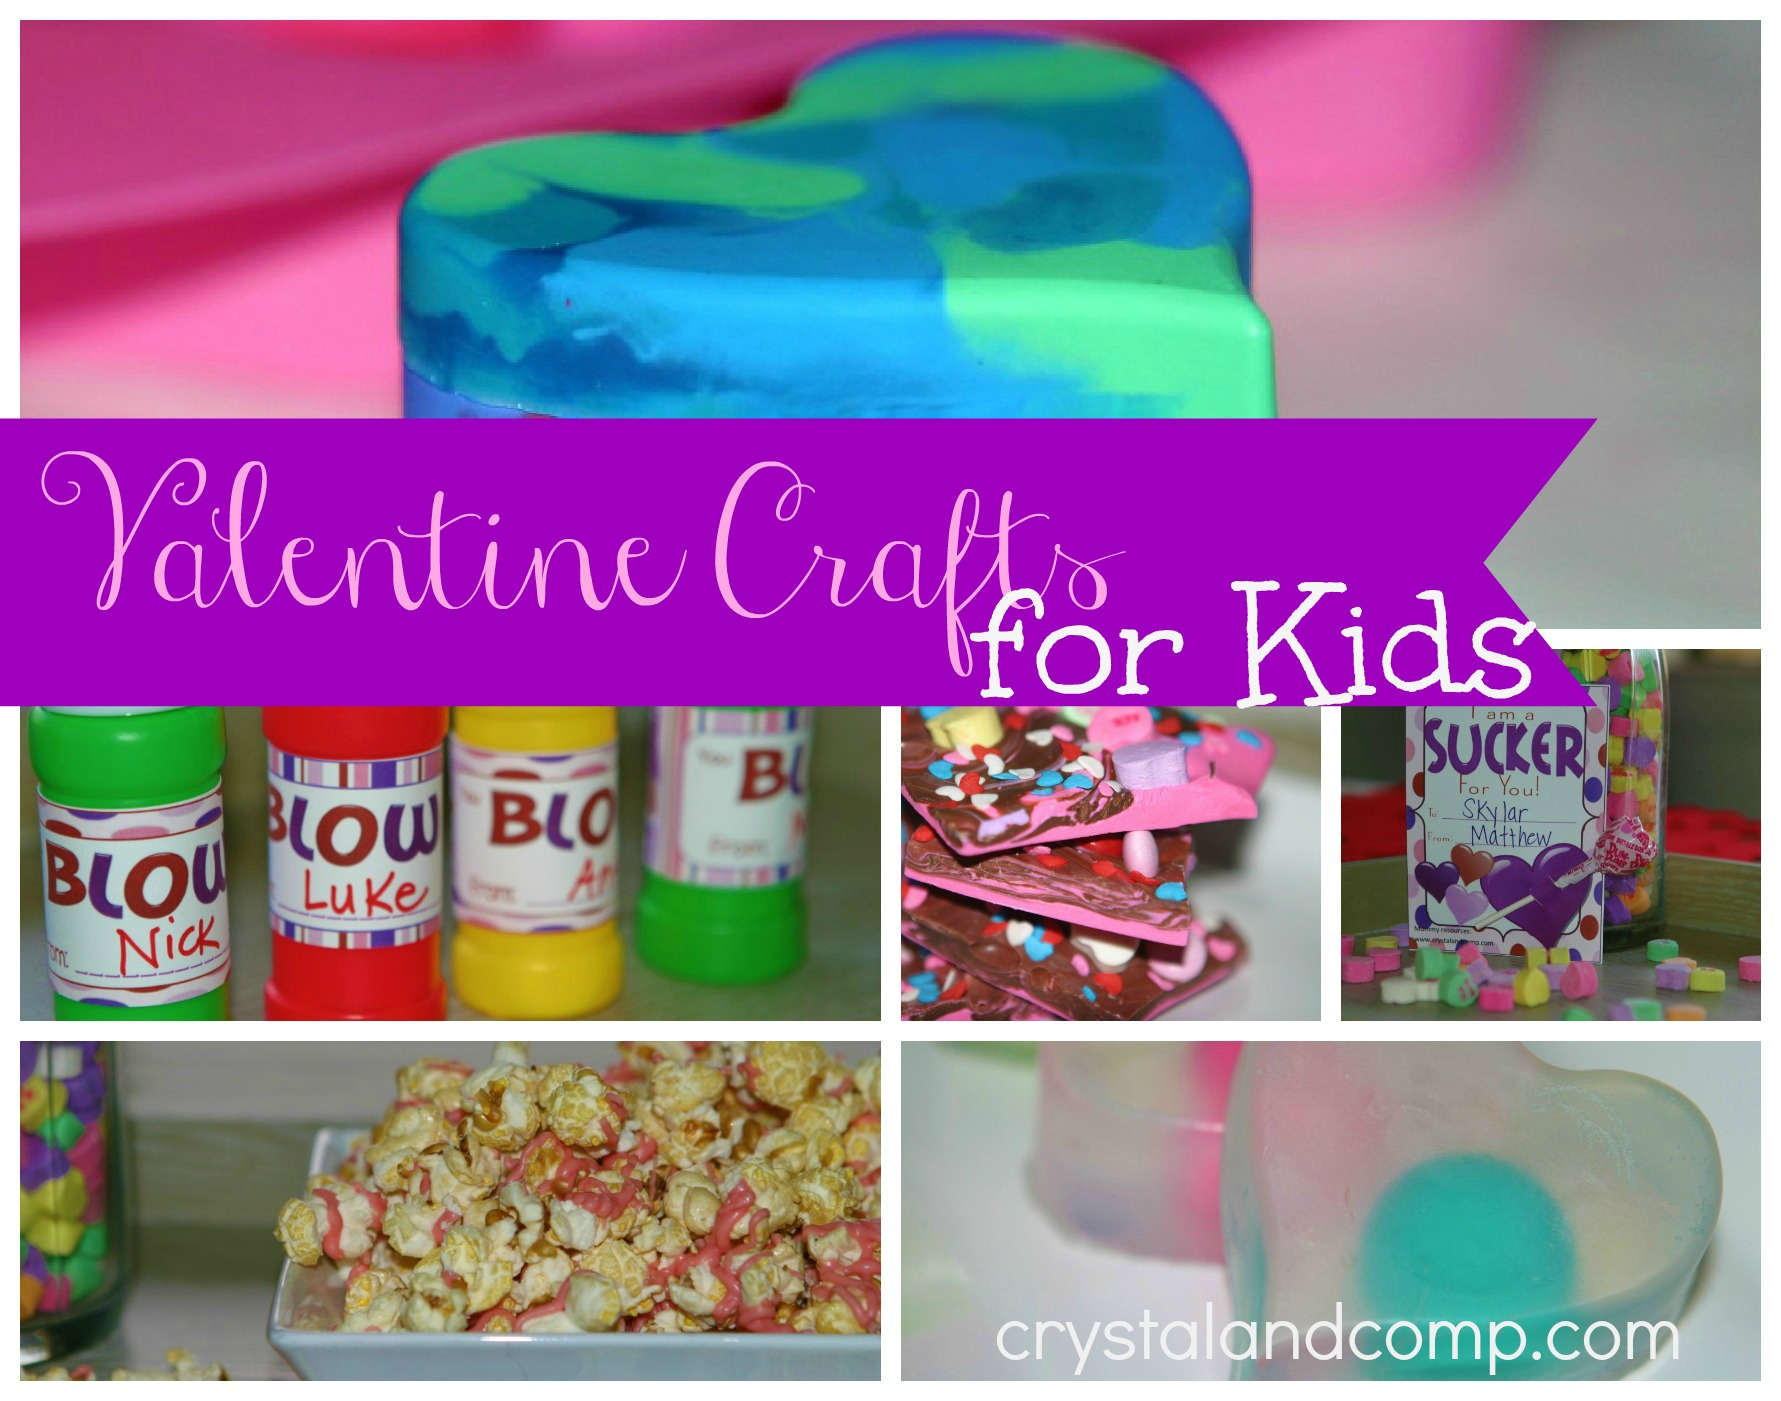 Valentine Crafts for Kids @DinkerGiggles @CrystalandComp #homeschool #crafts